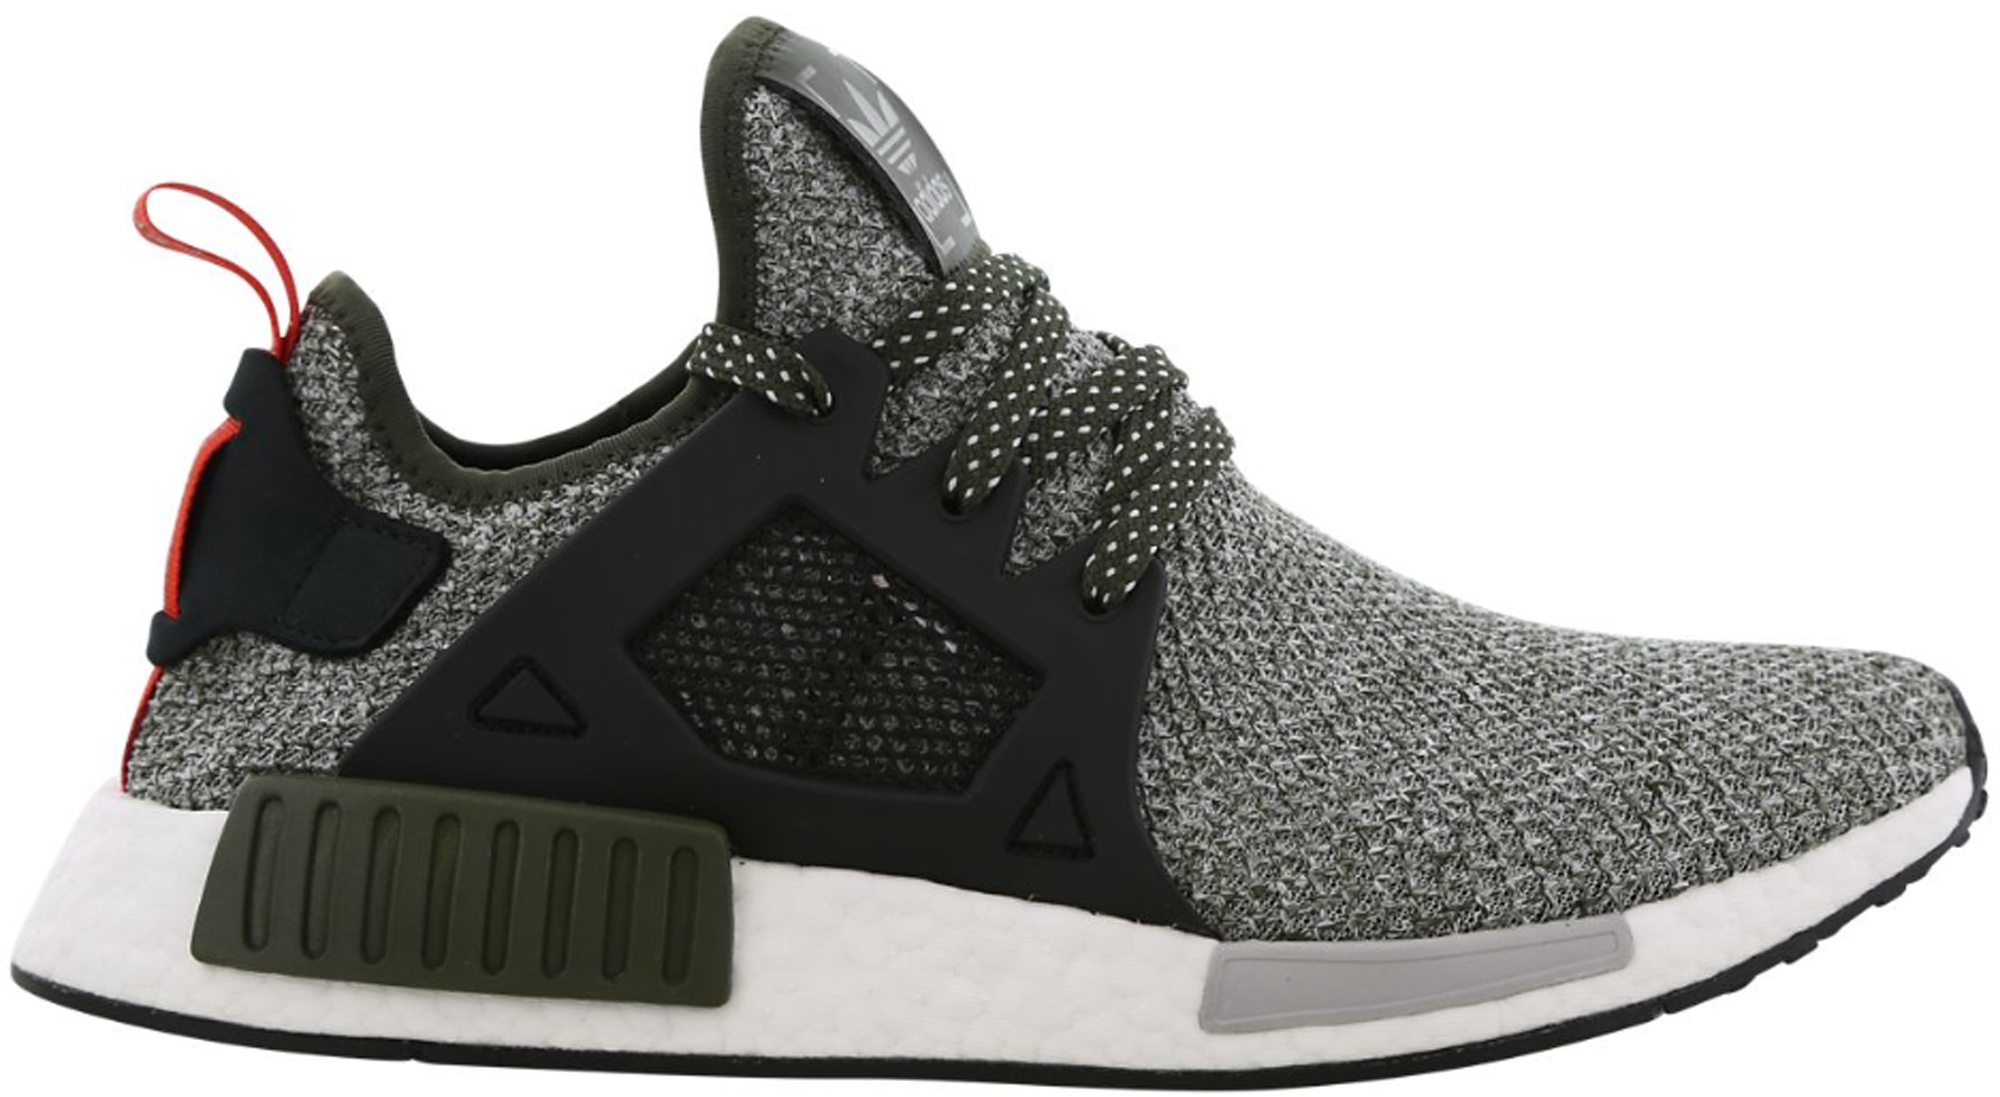 Adidas NMD XR1 Night Cargo